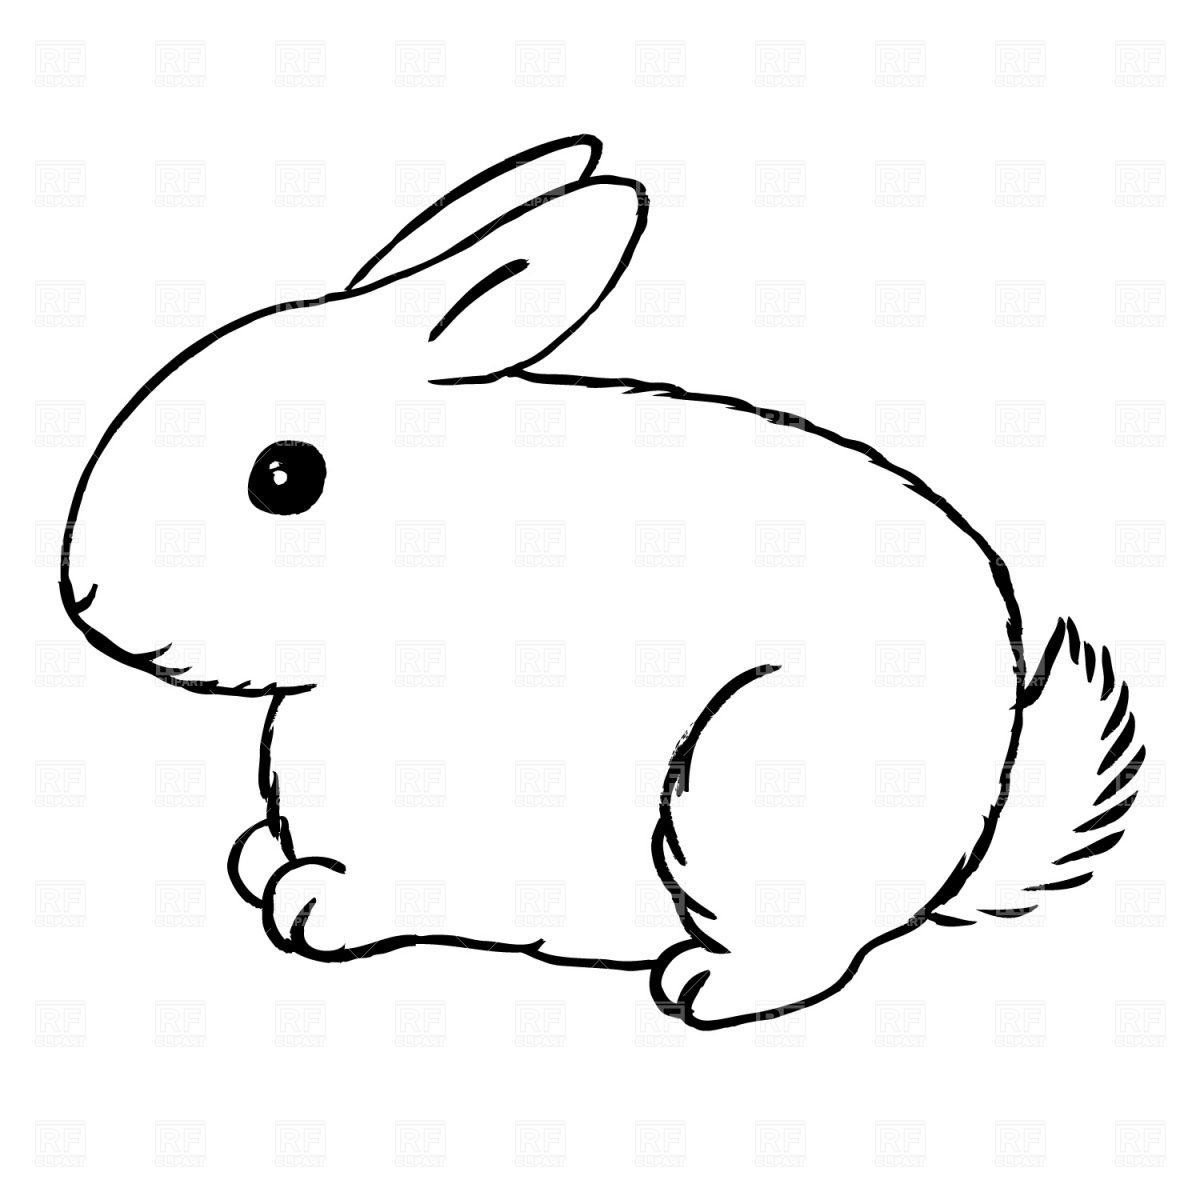 drawings of rabbits and bunnies use these free images for your websites art projects reports and  [ 1200 x 1200 Pixel ]